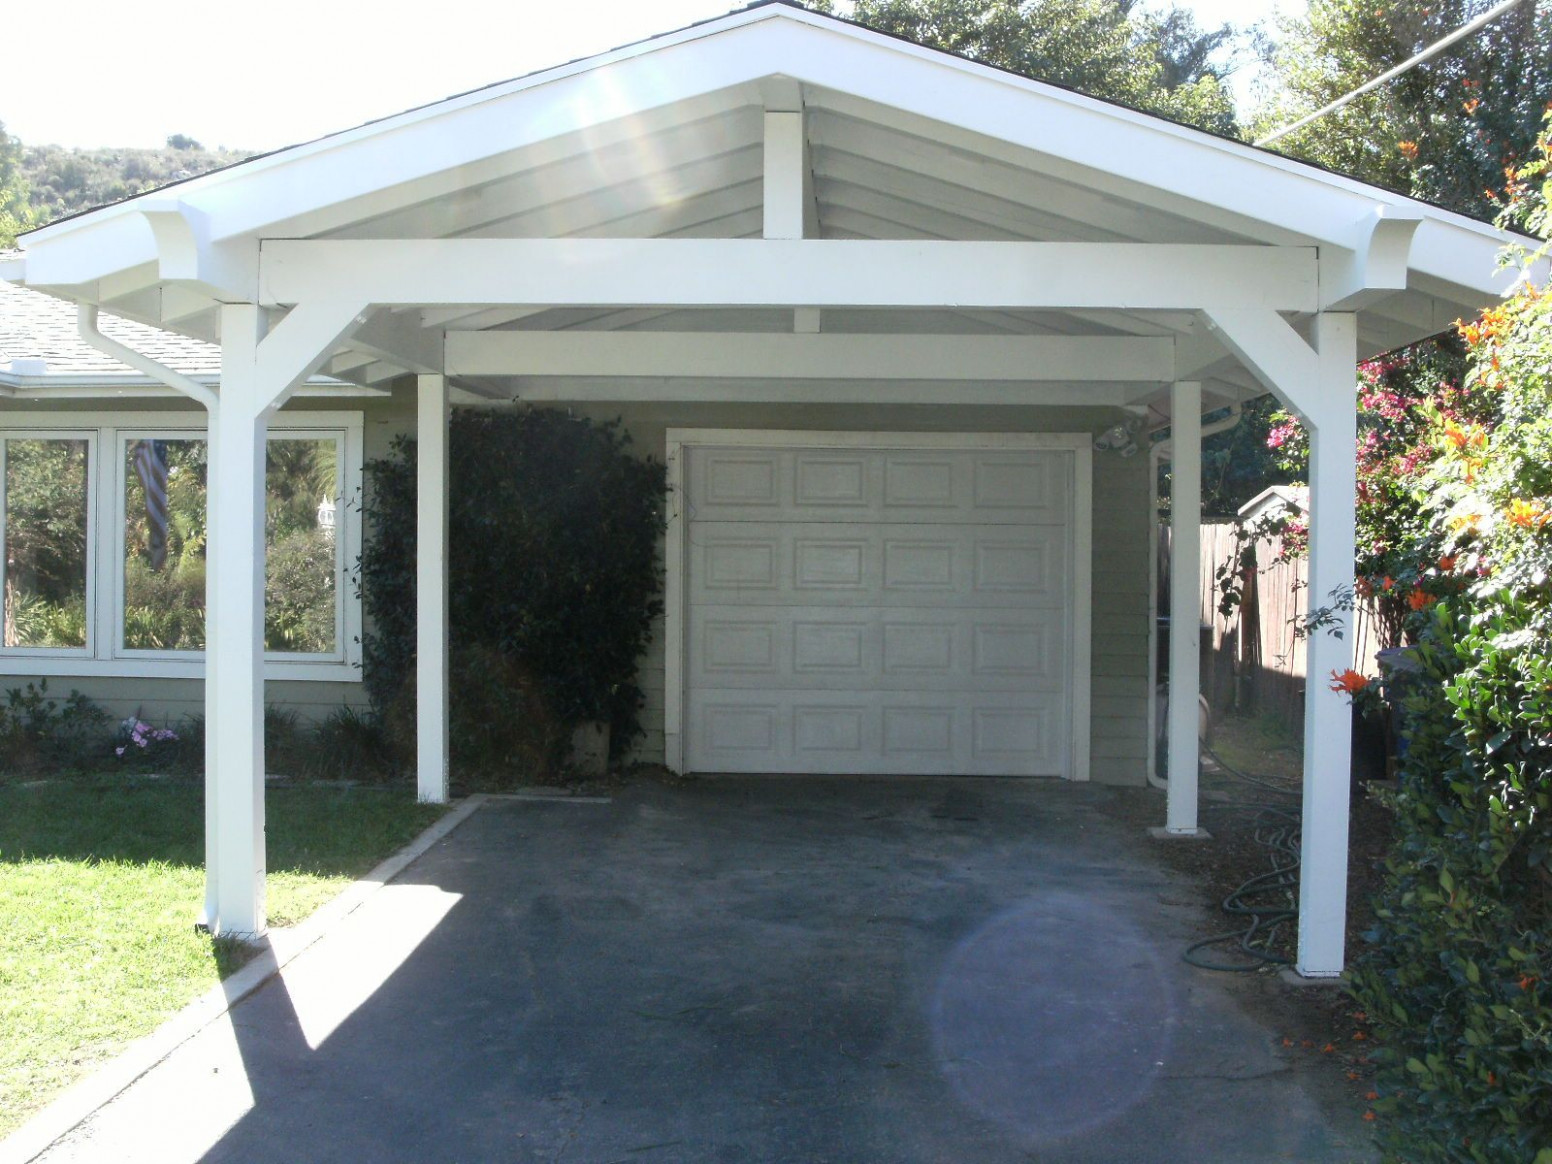 Pitched Roof Carport Adding Onto The Single Garage. # ..